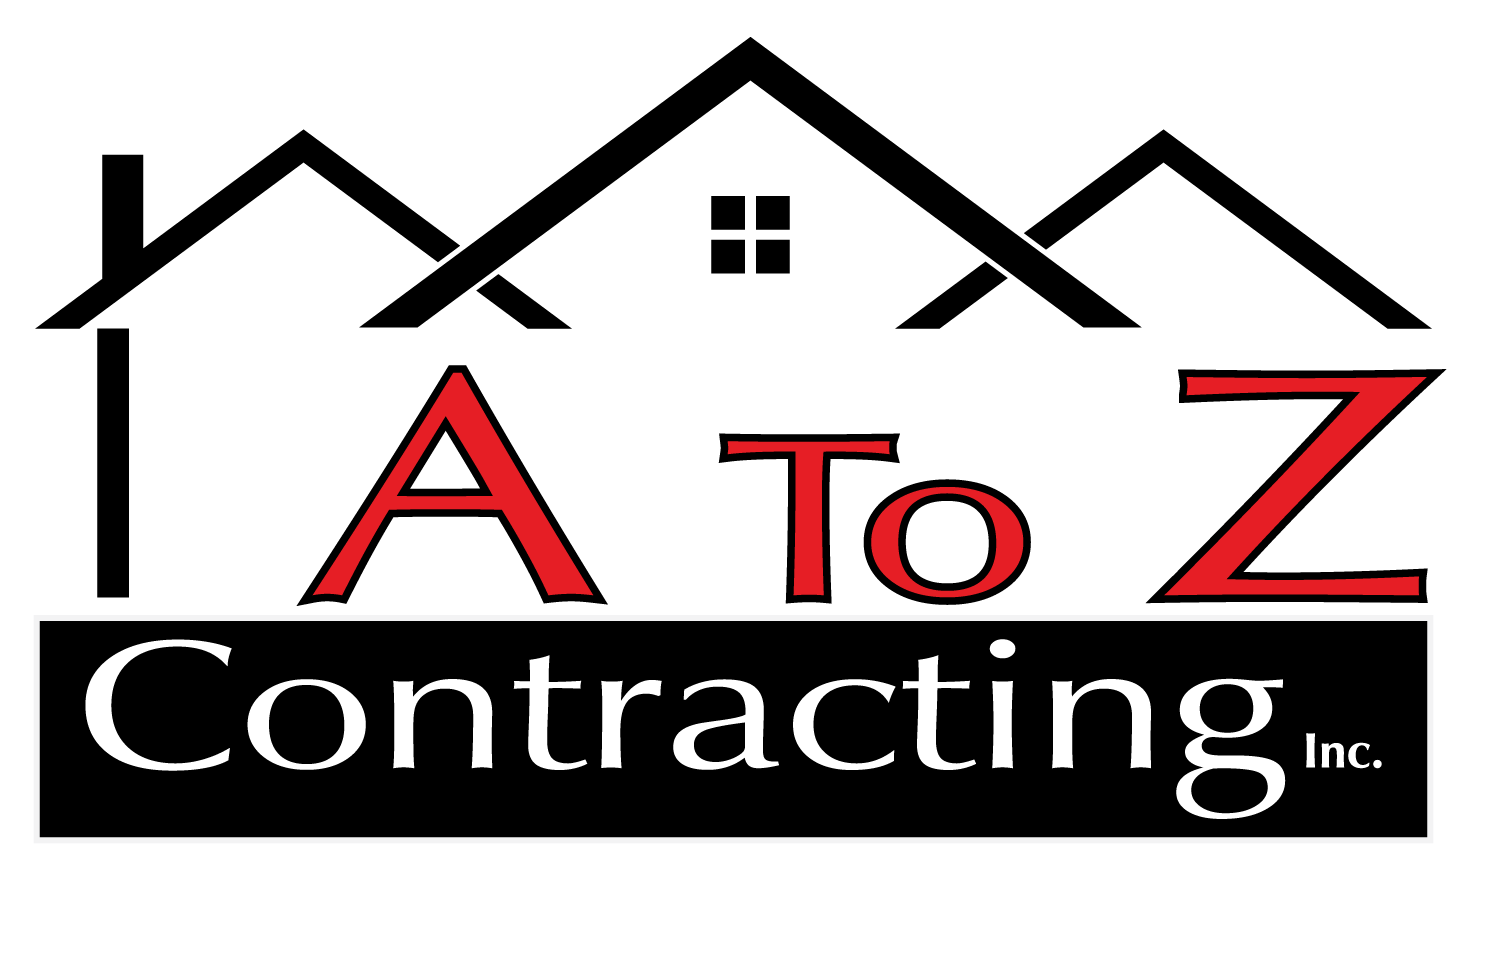 A to Z Contracting & Remodeling logo